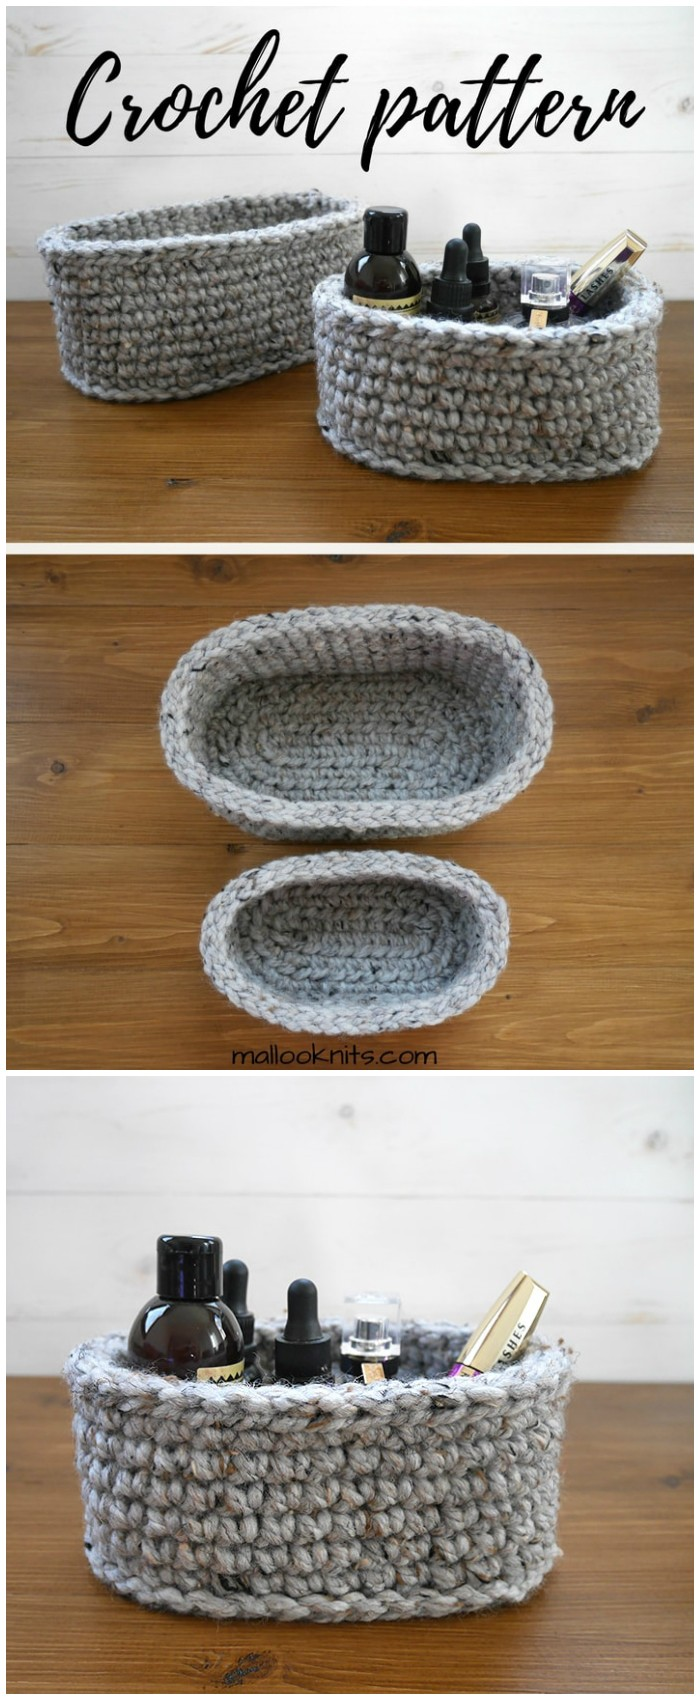 crochet oval basket pattern